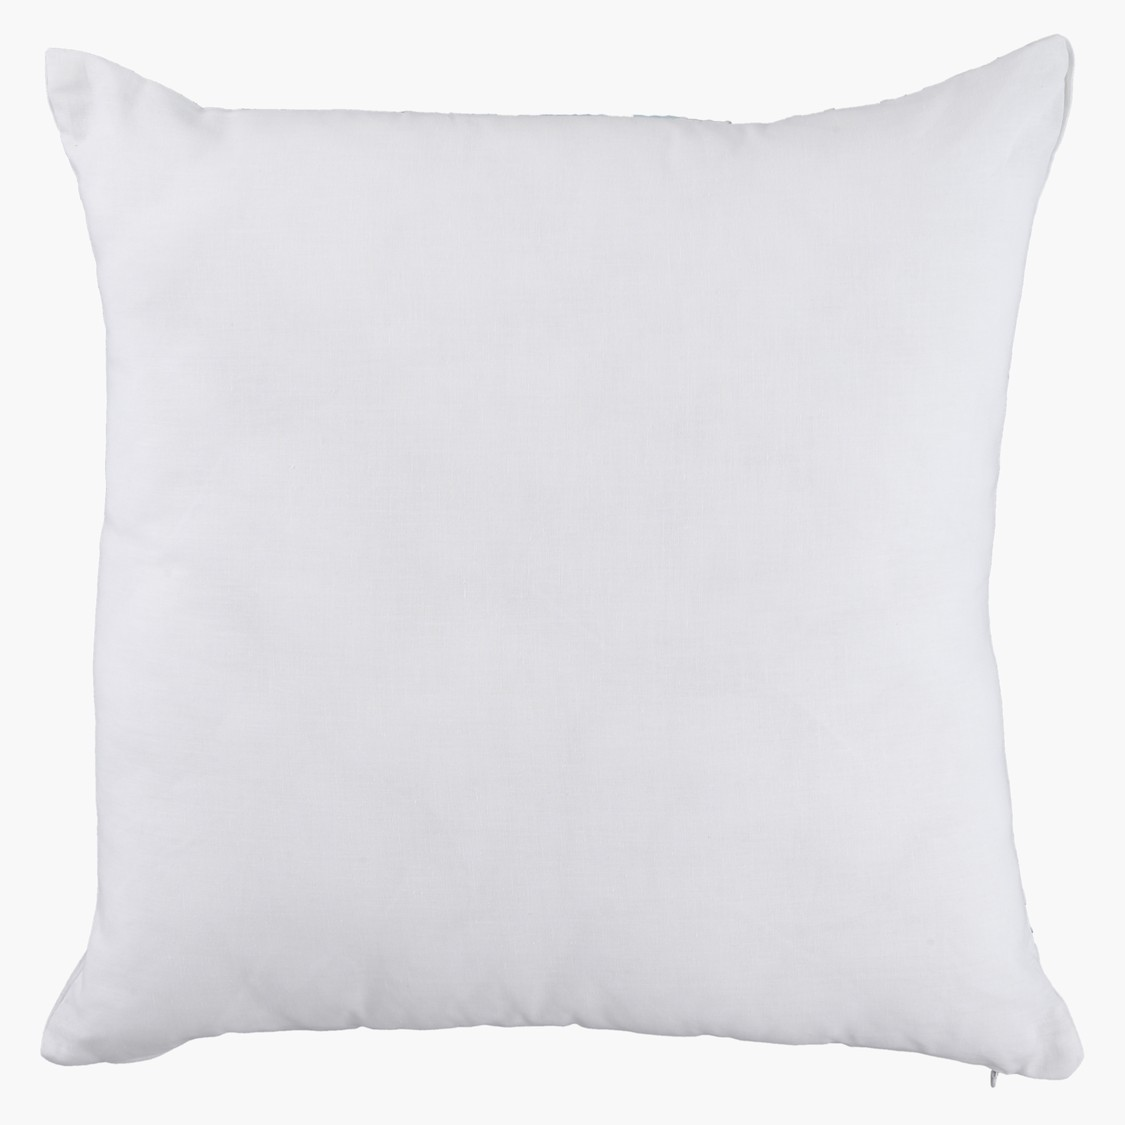 Embroidered Square Filled Cushion - 45x45 cms